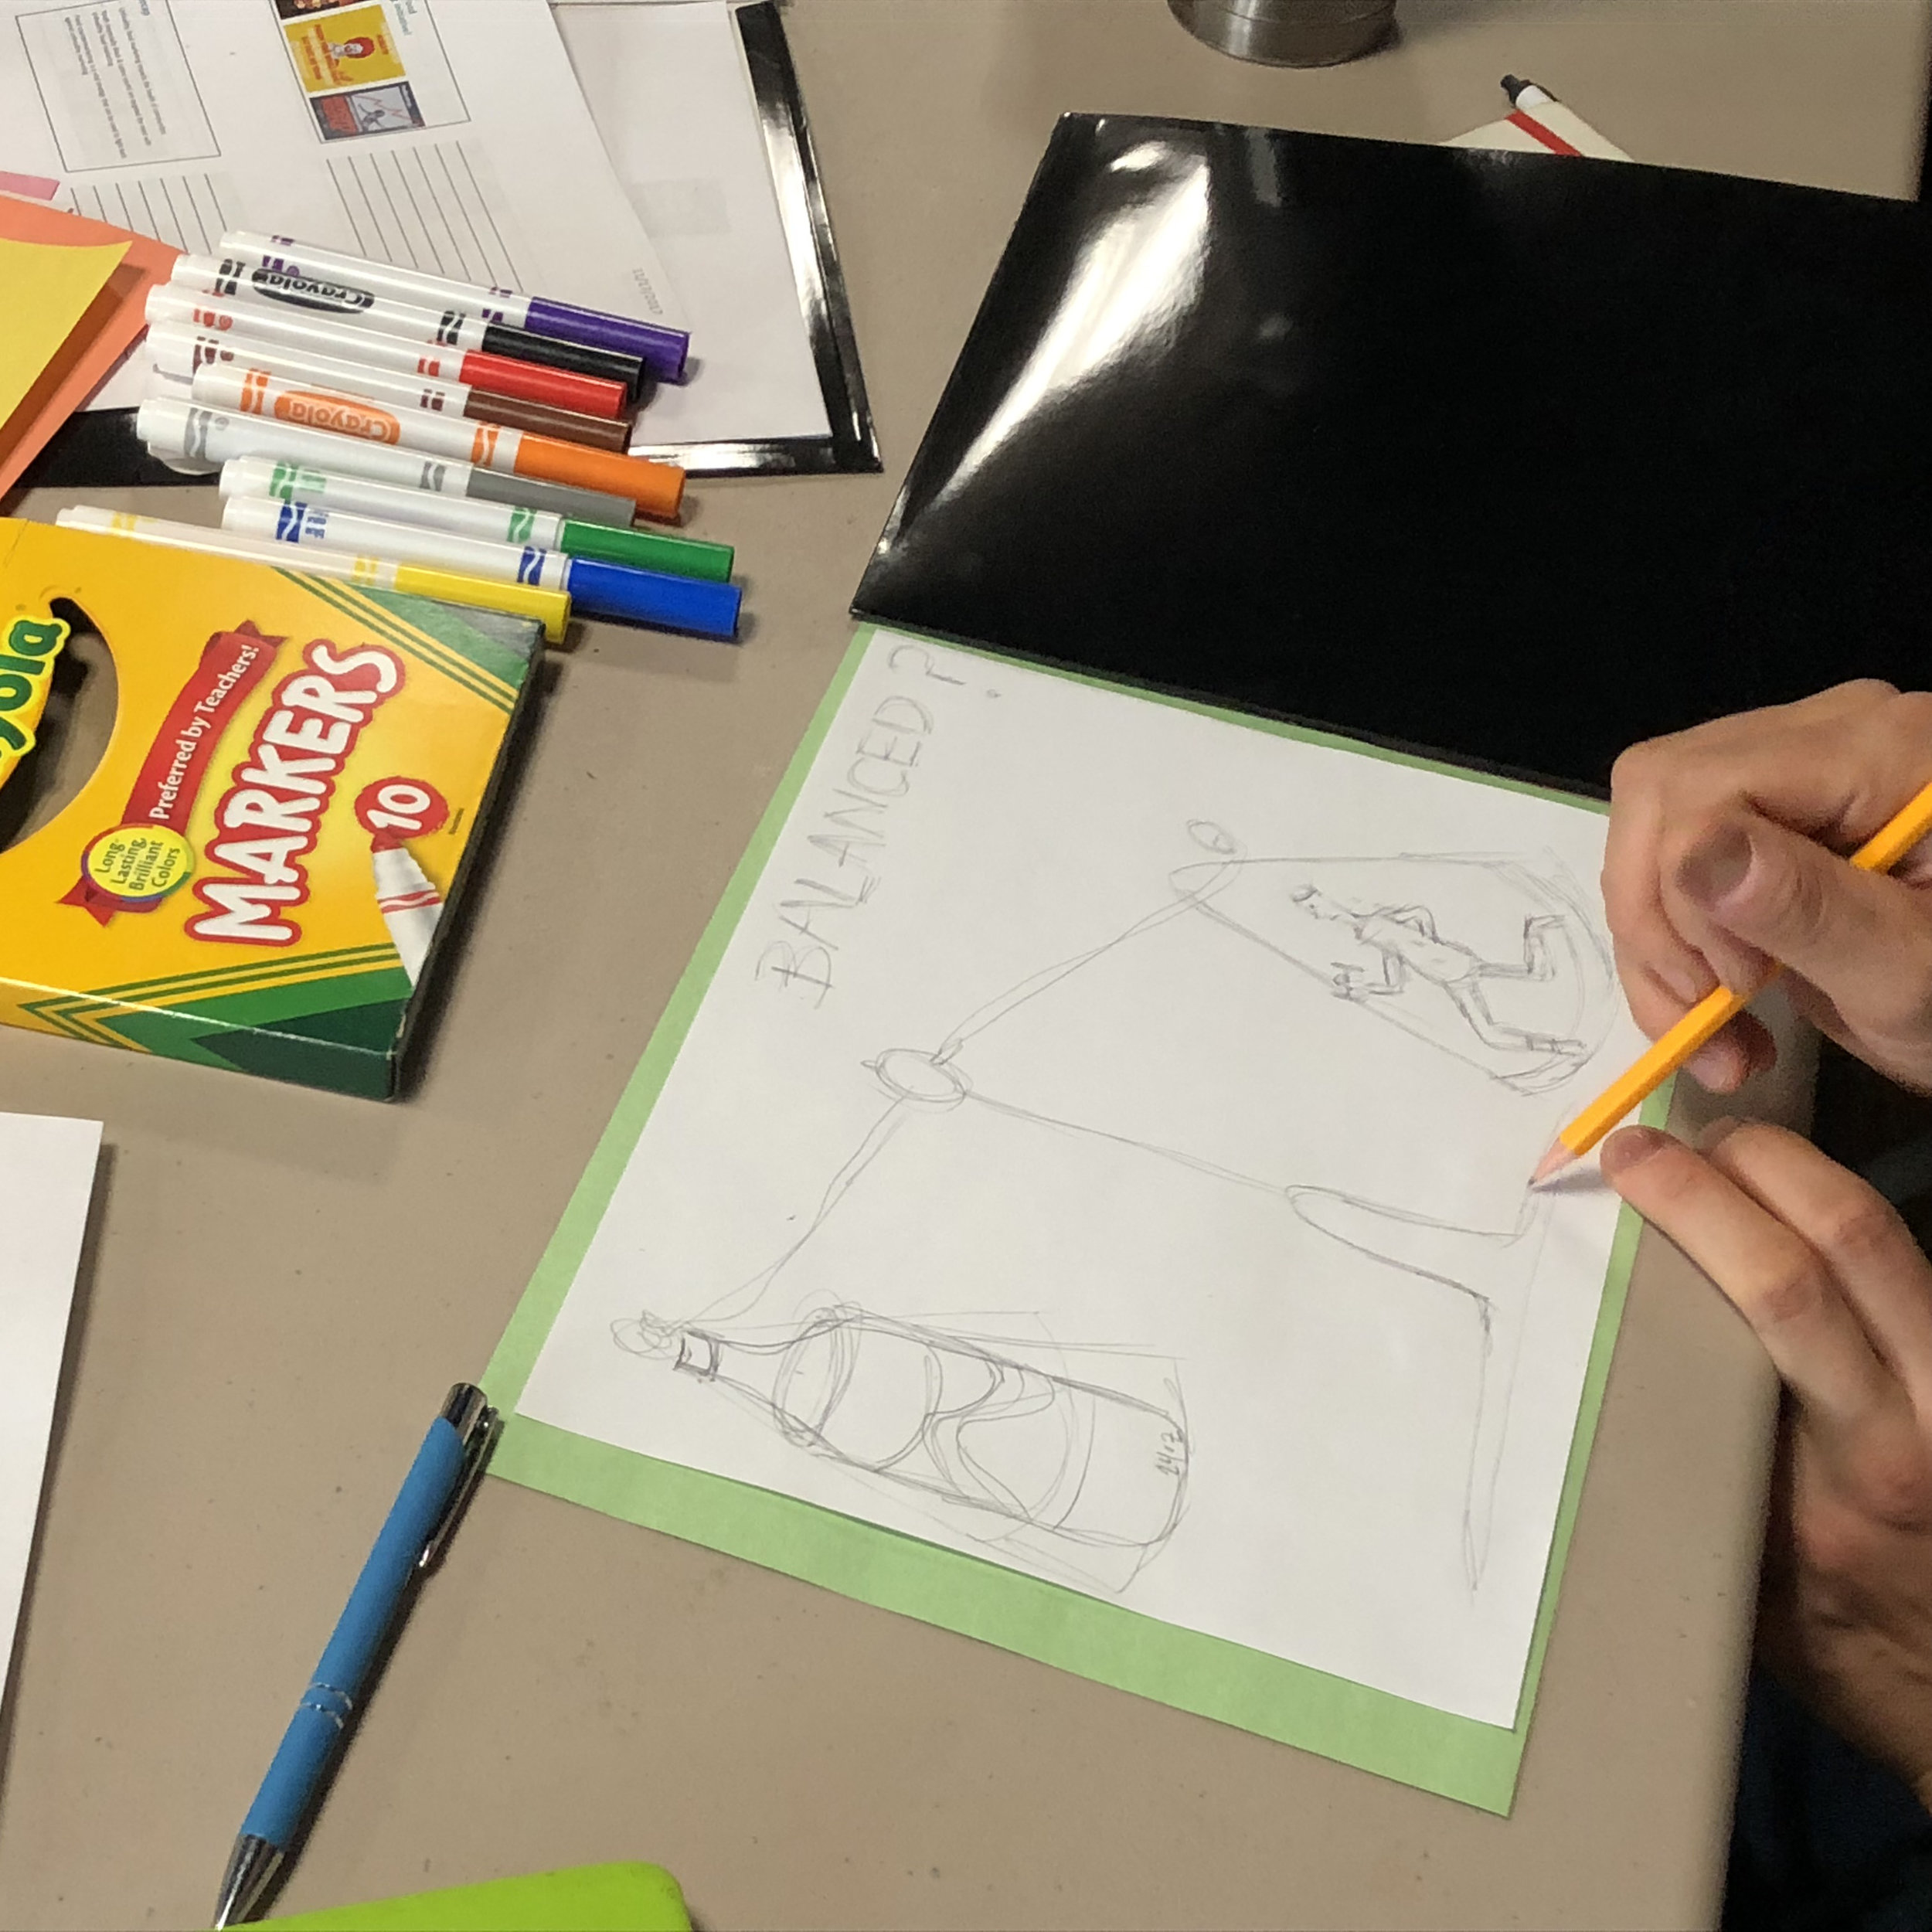 Participants from the Countermakerting Staff Training Program creating a countermarketing image against sugary beverages.